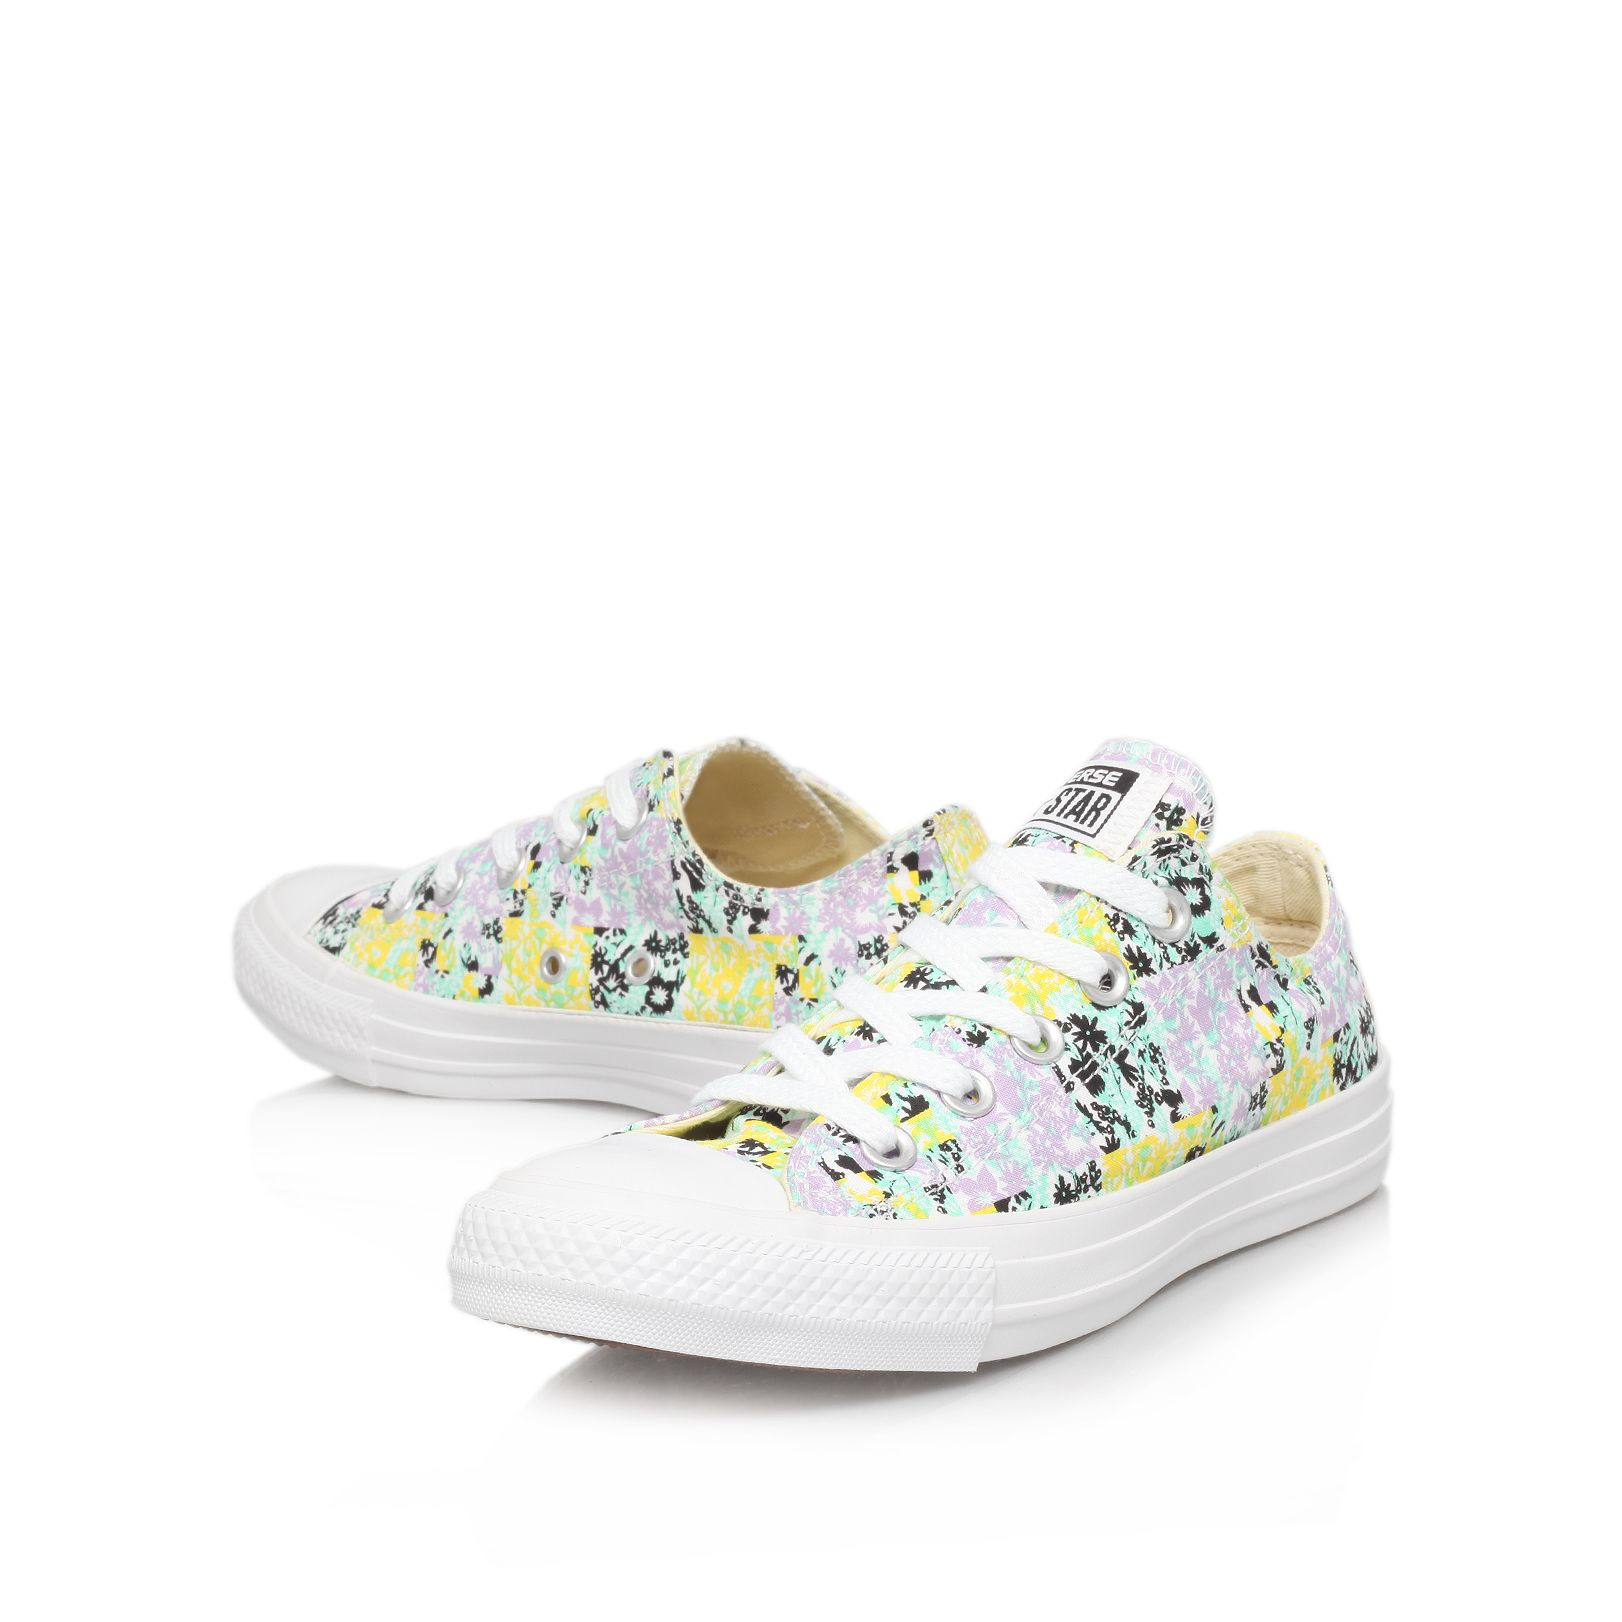 Floral low trainers